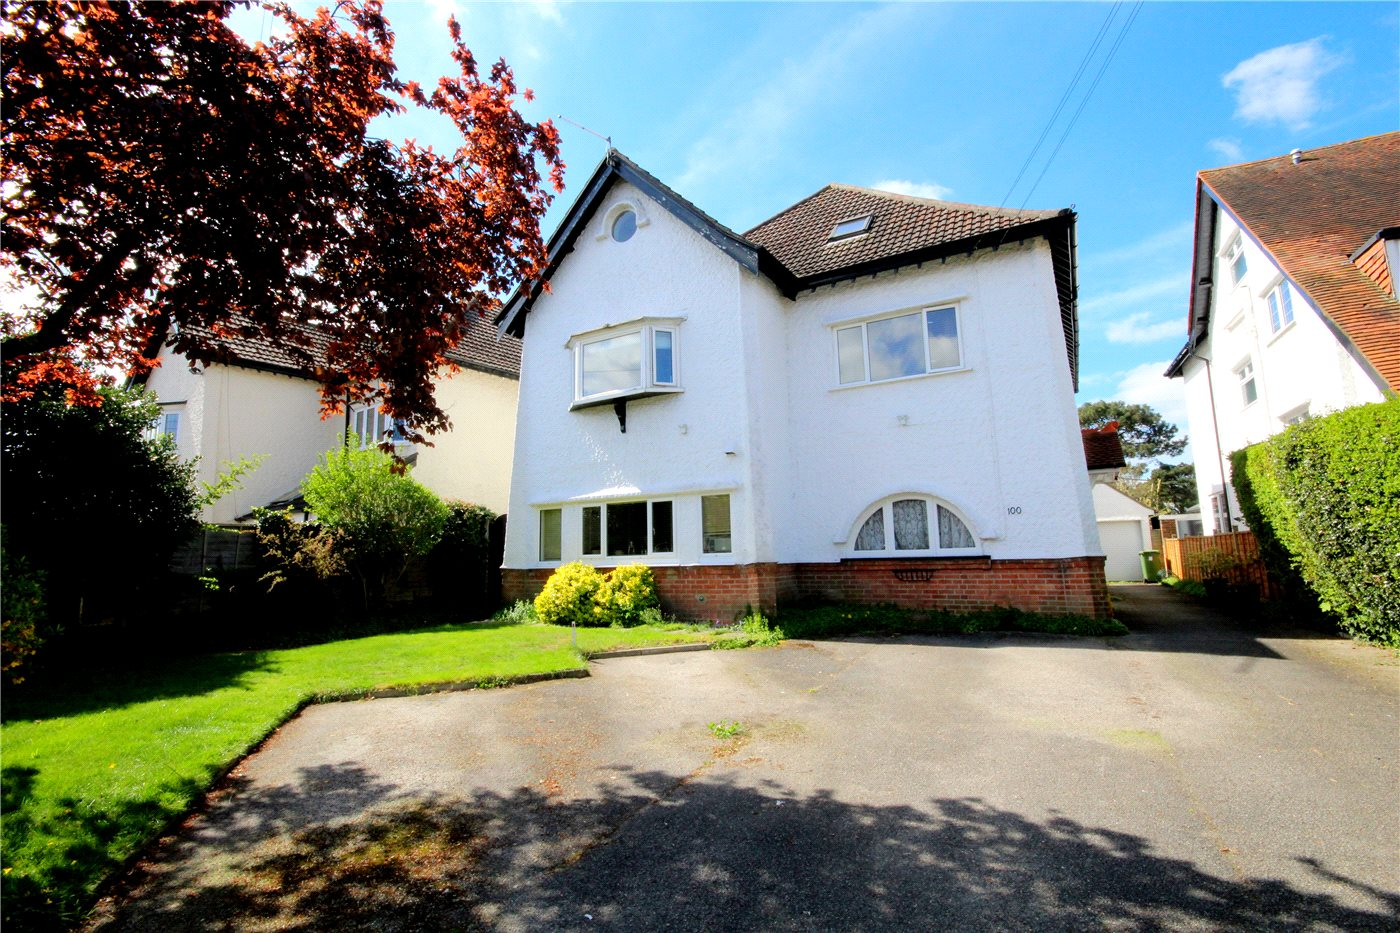 7 Bedrooms Detached House for sale in Alexandra Road, Lower Parkstone, Poole, BH14